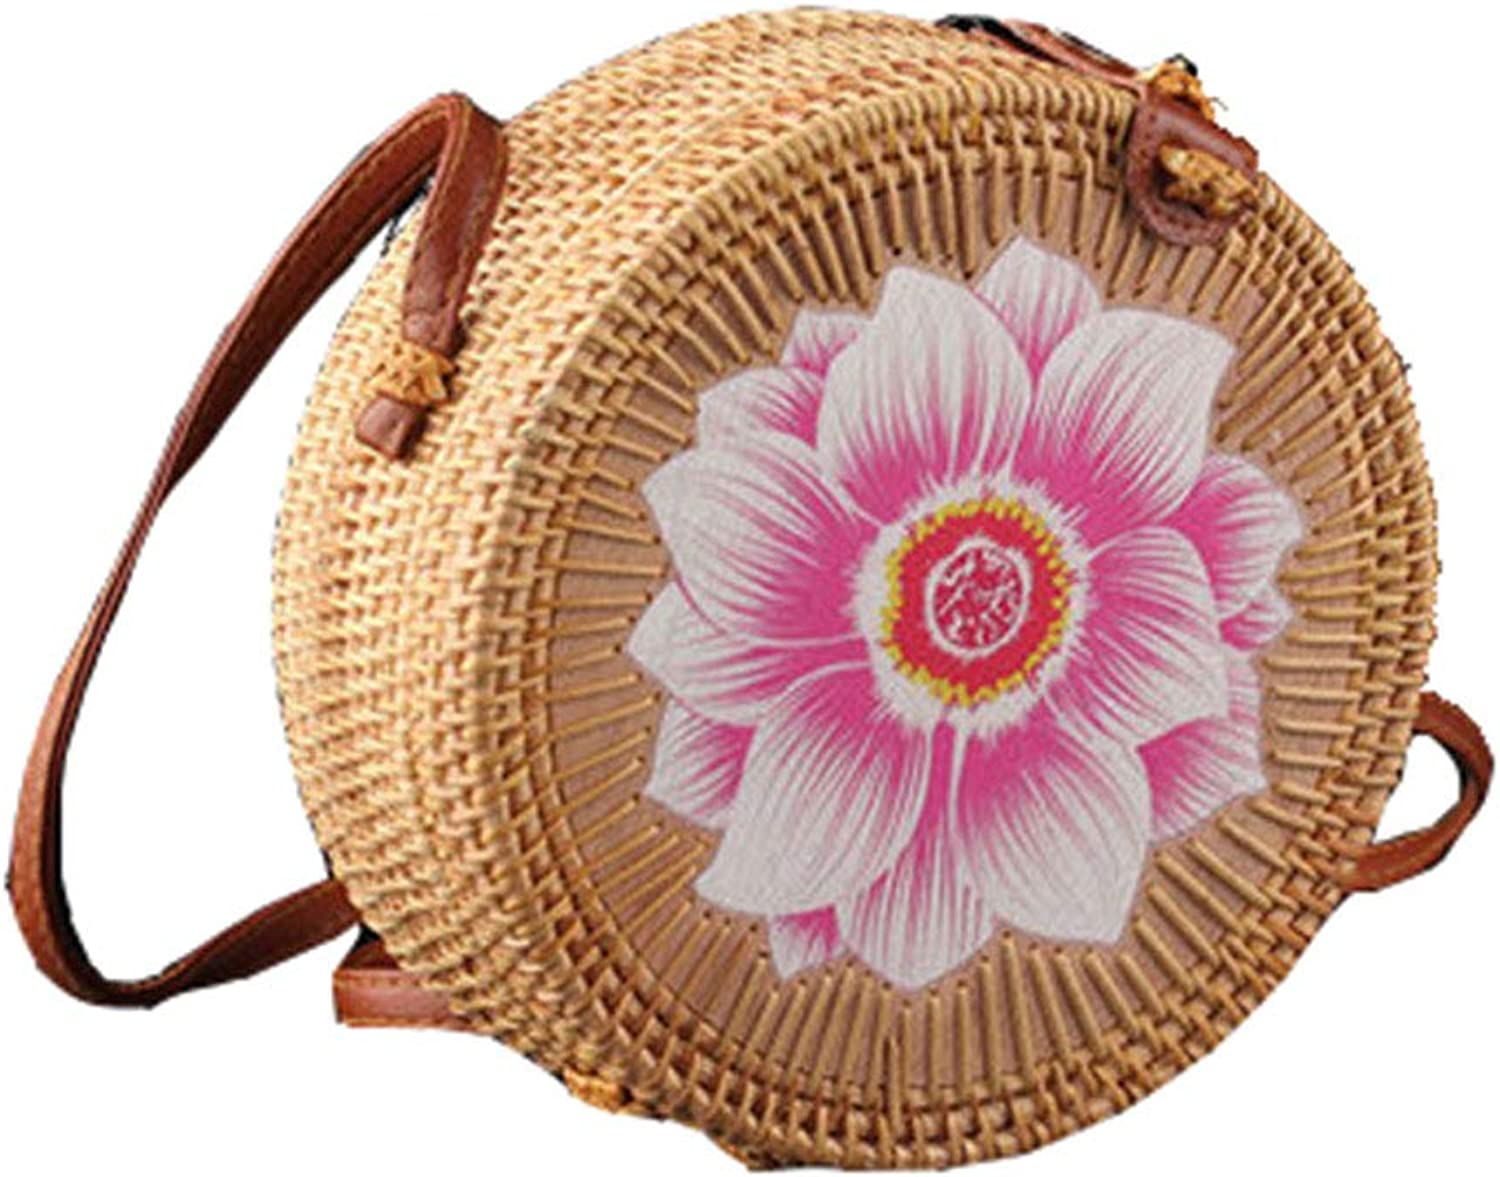 AMYPZN Round Woven Ata Rattan Bag Handmade Petal Rattan Shoulder Beach Bag Crossbody Bag Sunflower Style